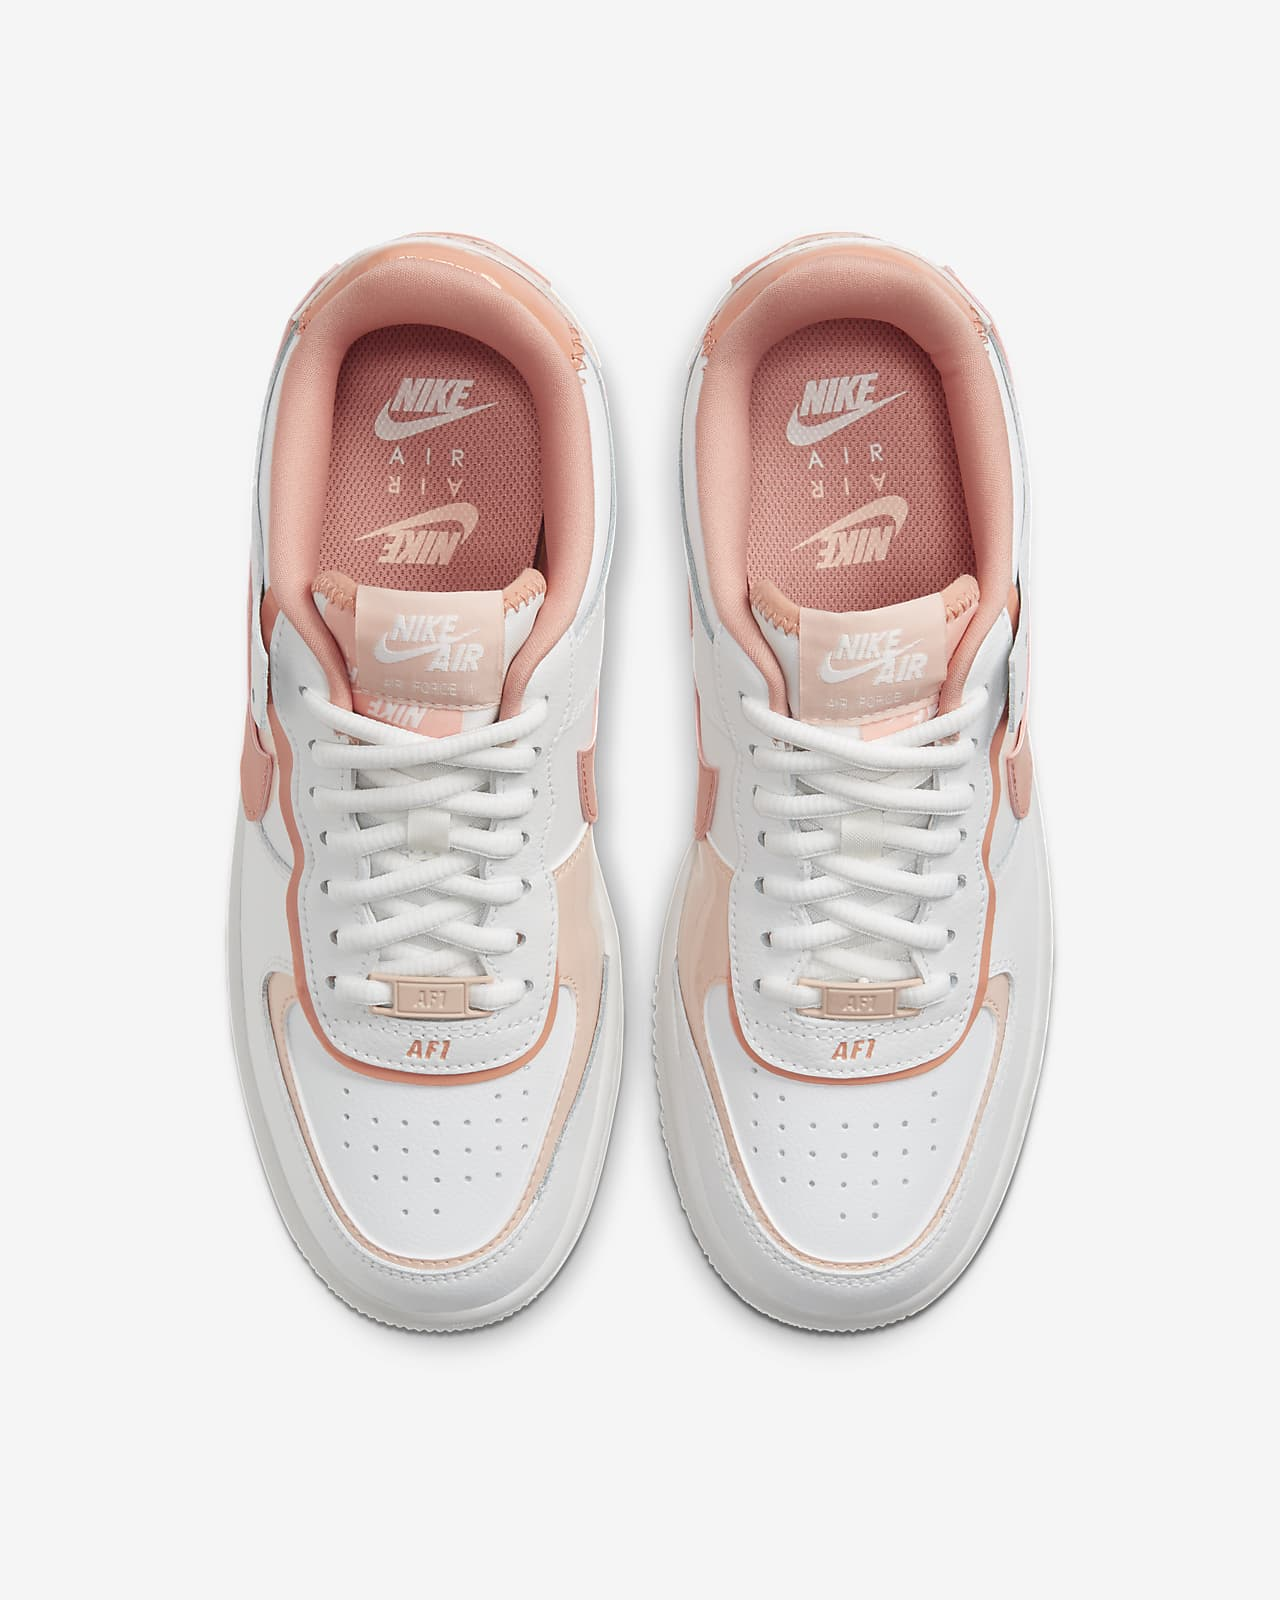 Nike Air Force 1 Shadow Women S Shoe Nike My 4.7 out of 5 stars 398. nike air force 1 shadow women s shoe